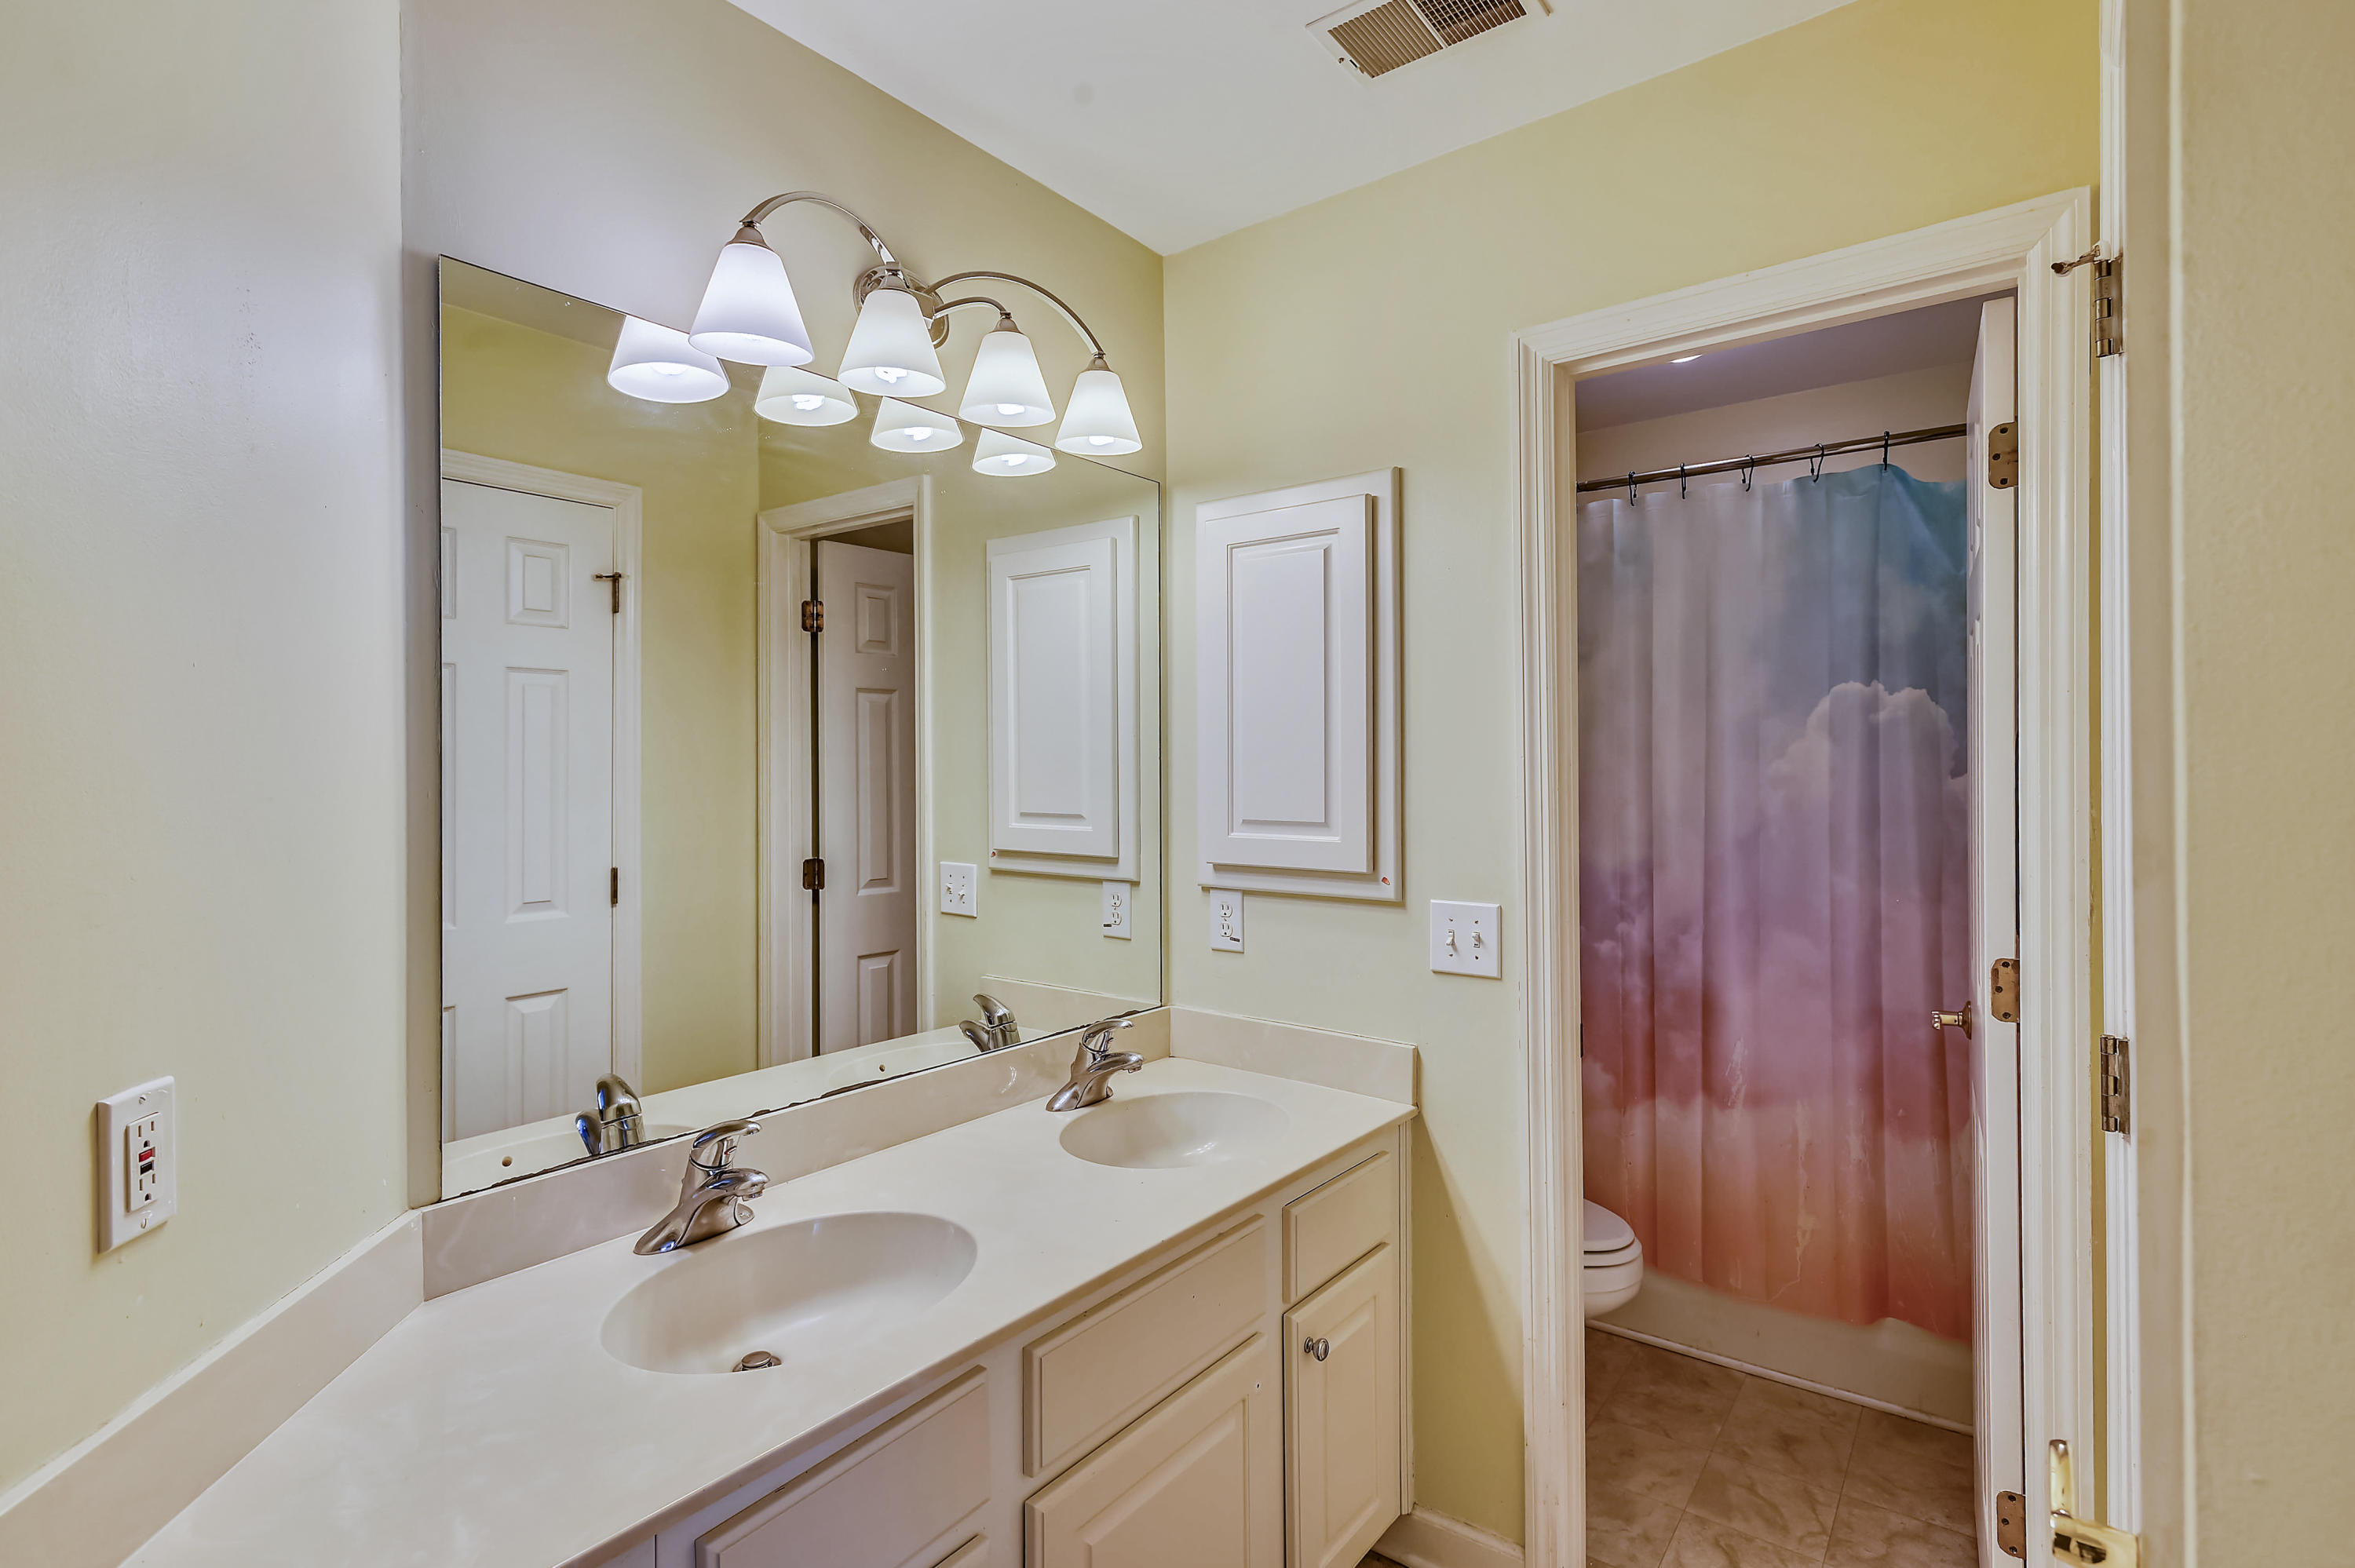 Dunes West Homes For Sale - 2137 Tall Grass, Mount Pleasant, SC - 21